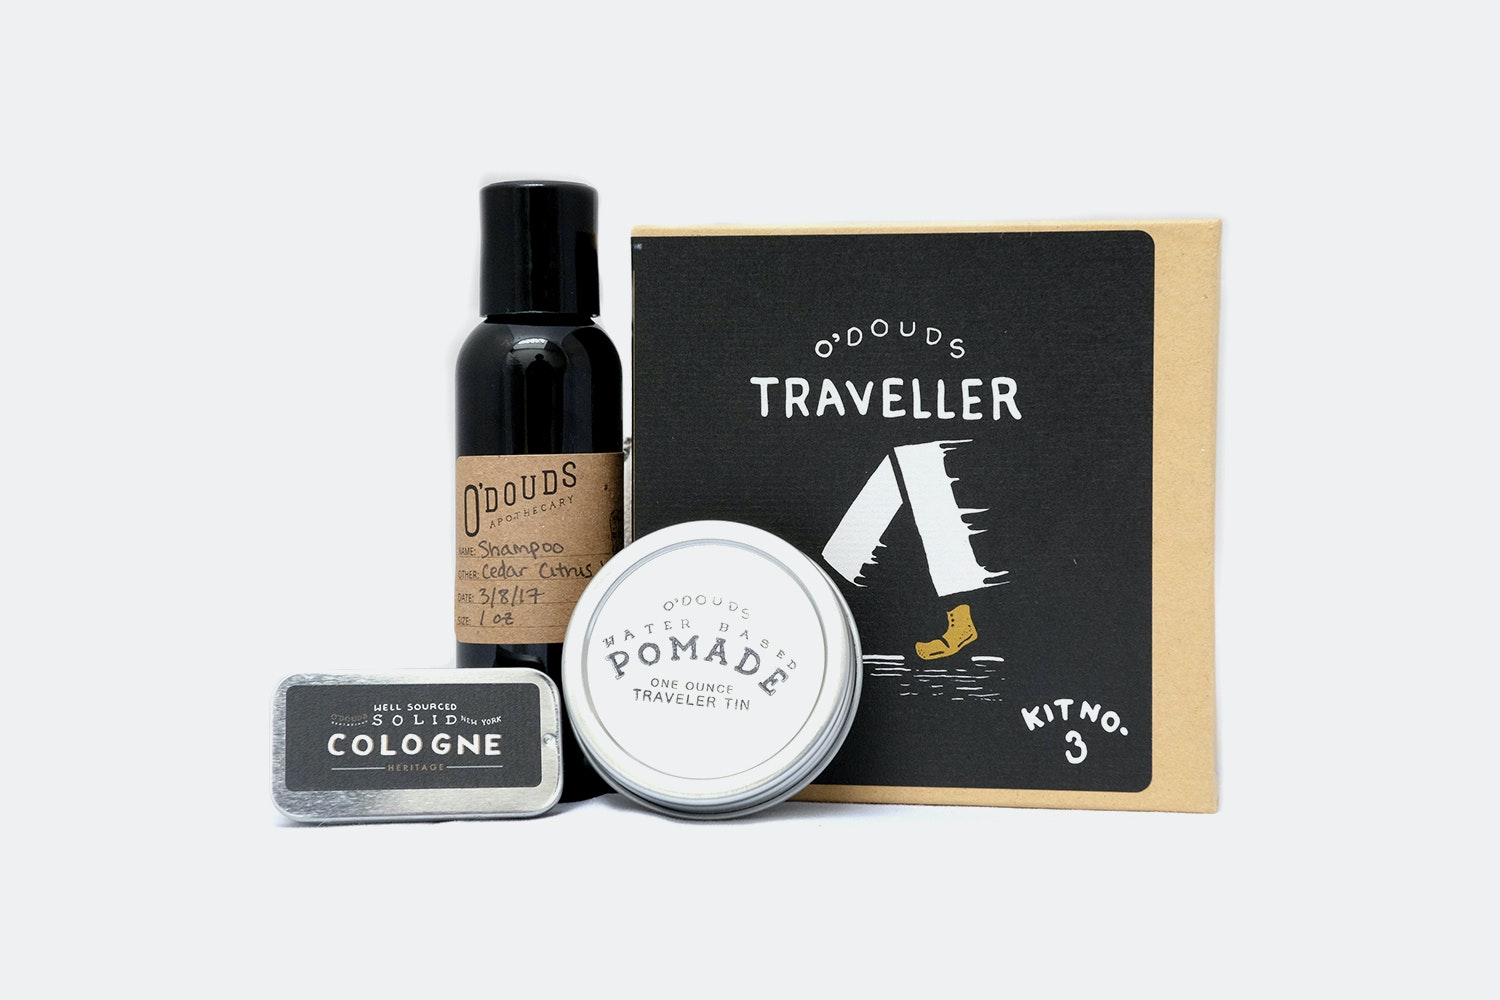 O'Douds Apothecary Grooming Kits